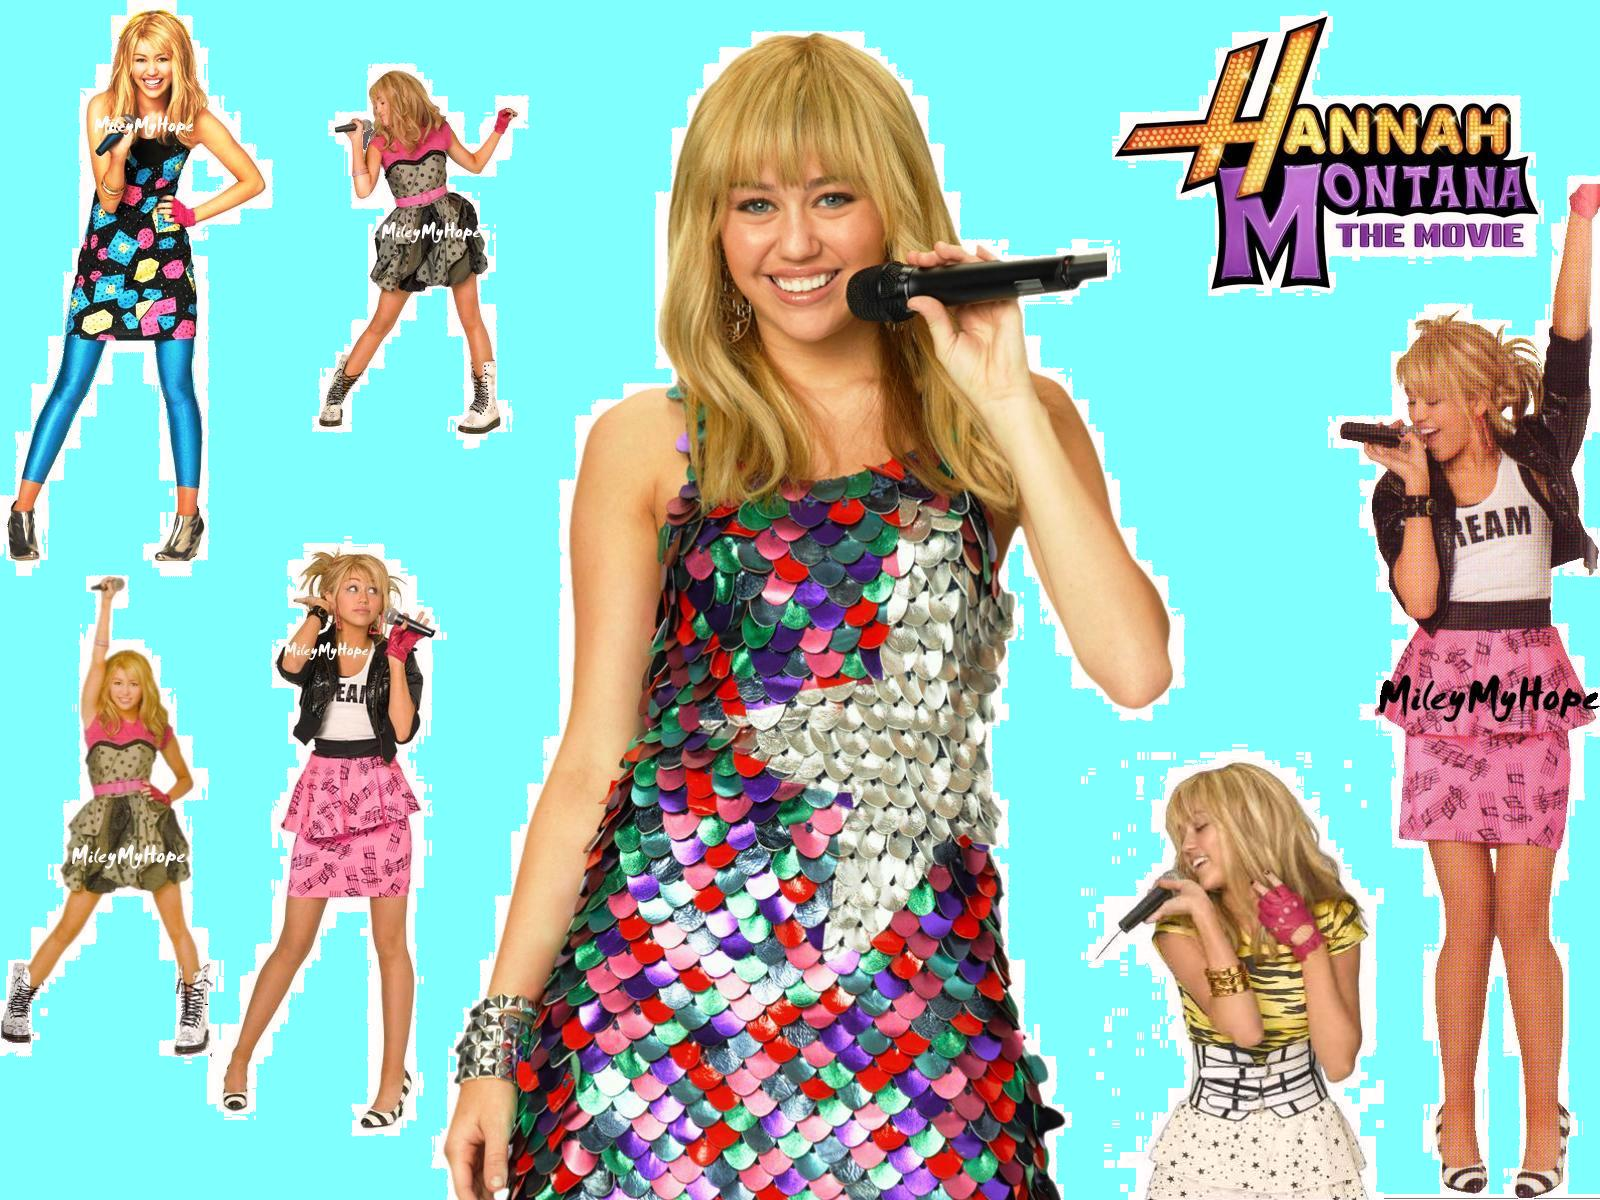 HM-THE-MOVIE-hannah-montana-24178344-1600-1200.png